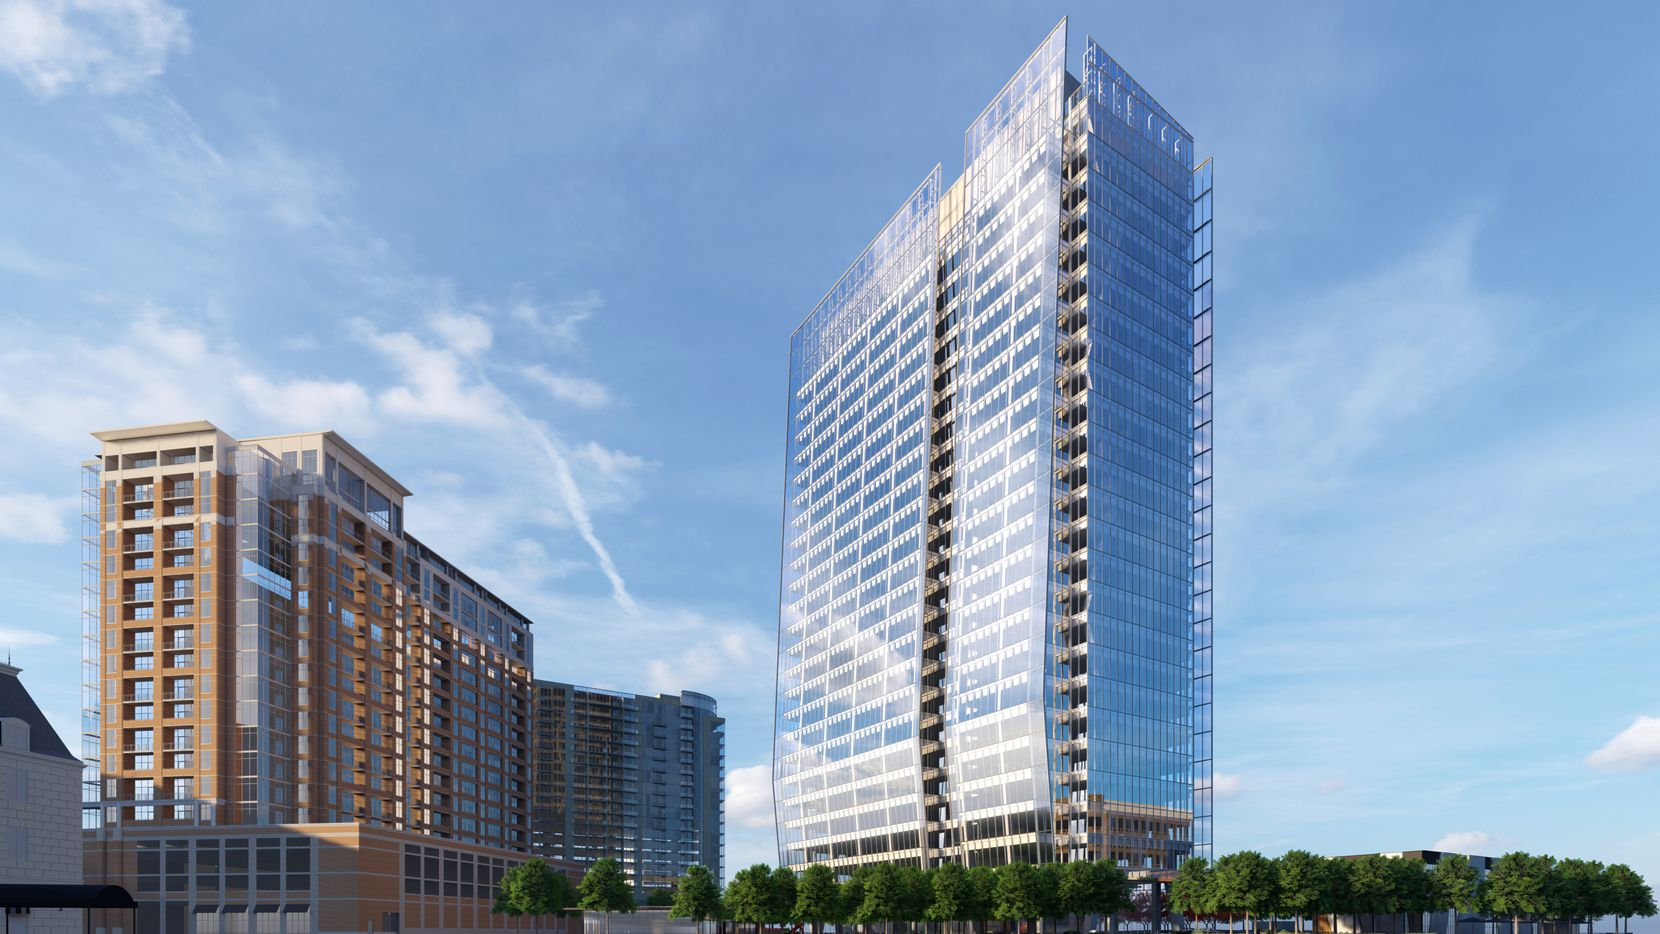 The 23Springs high-rise will be 26 stories tall.